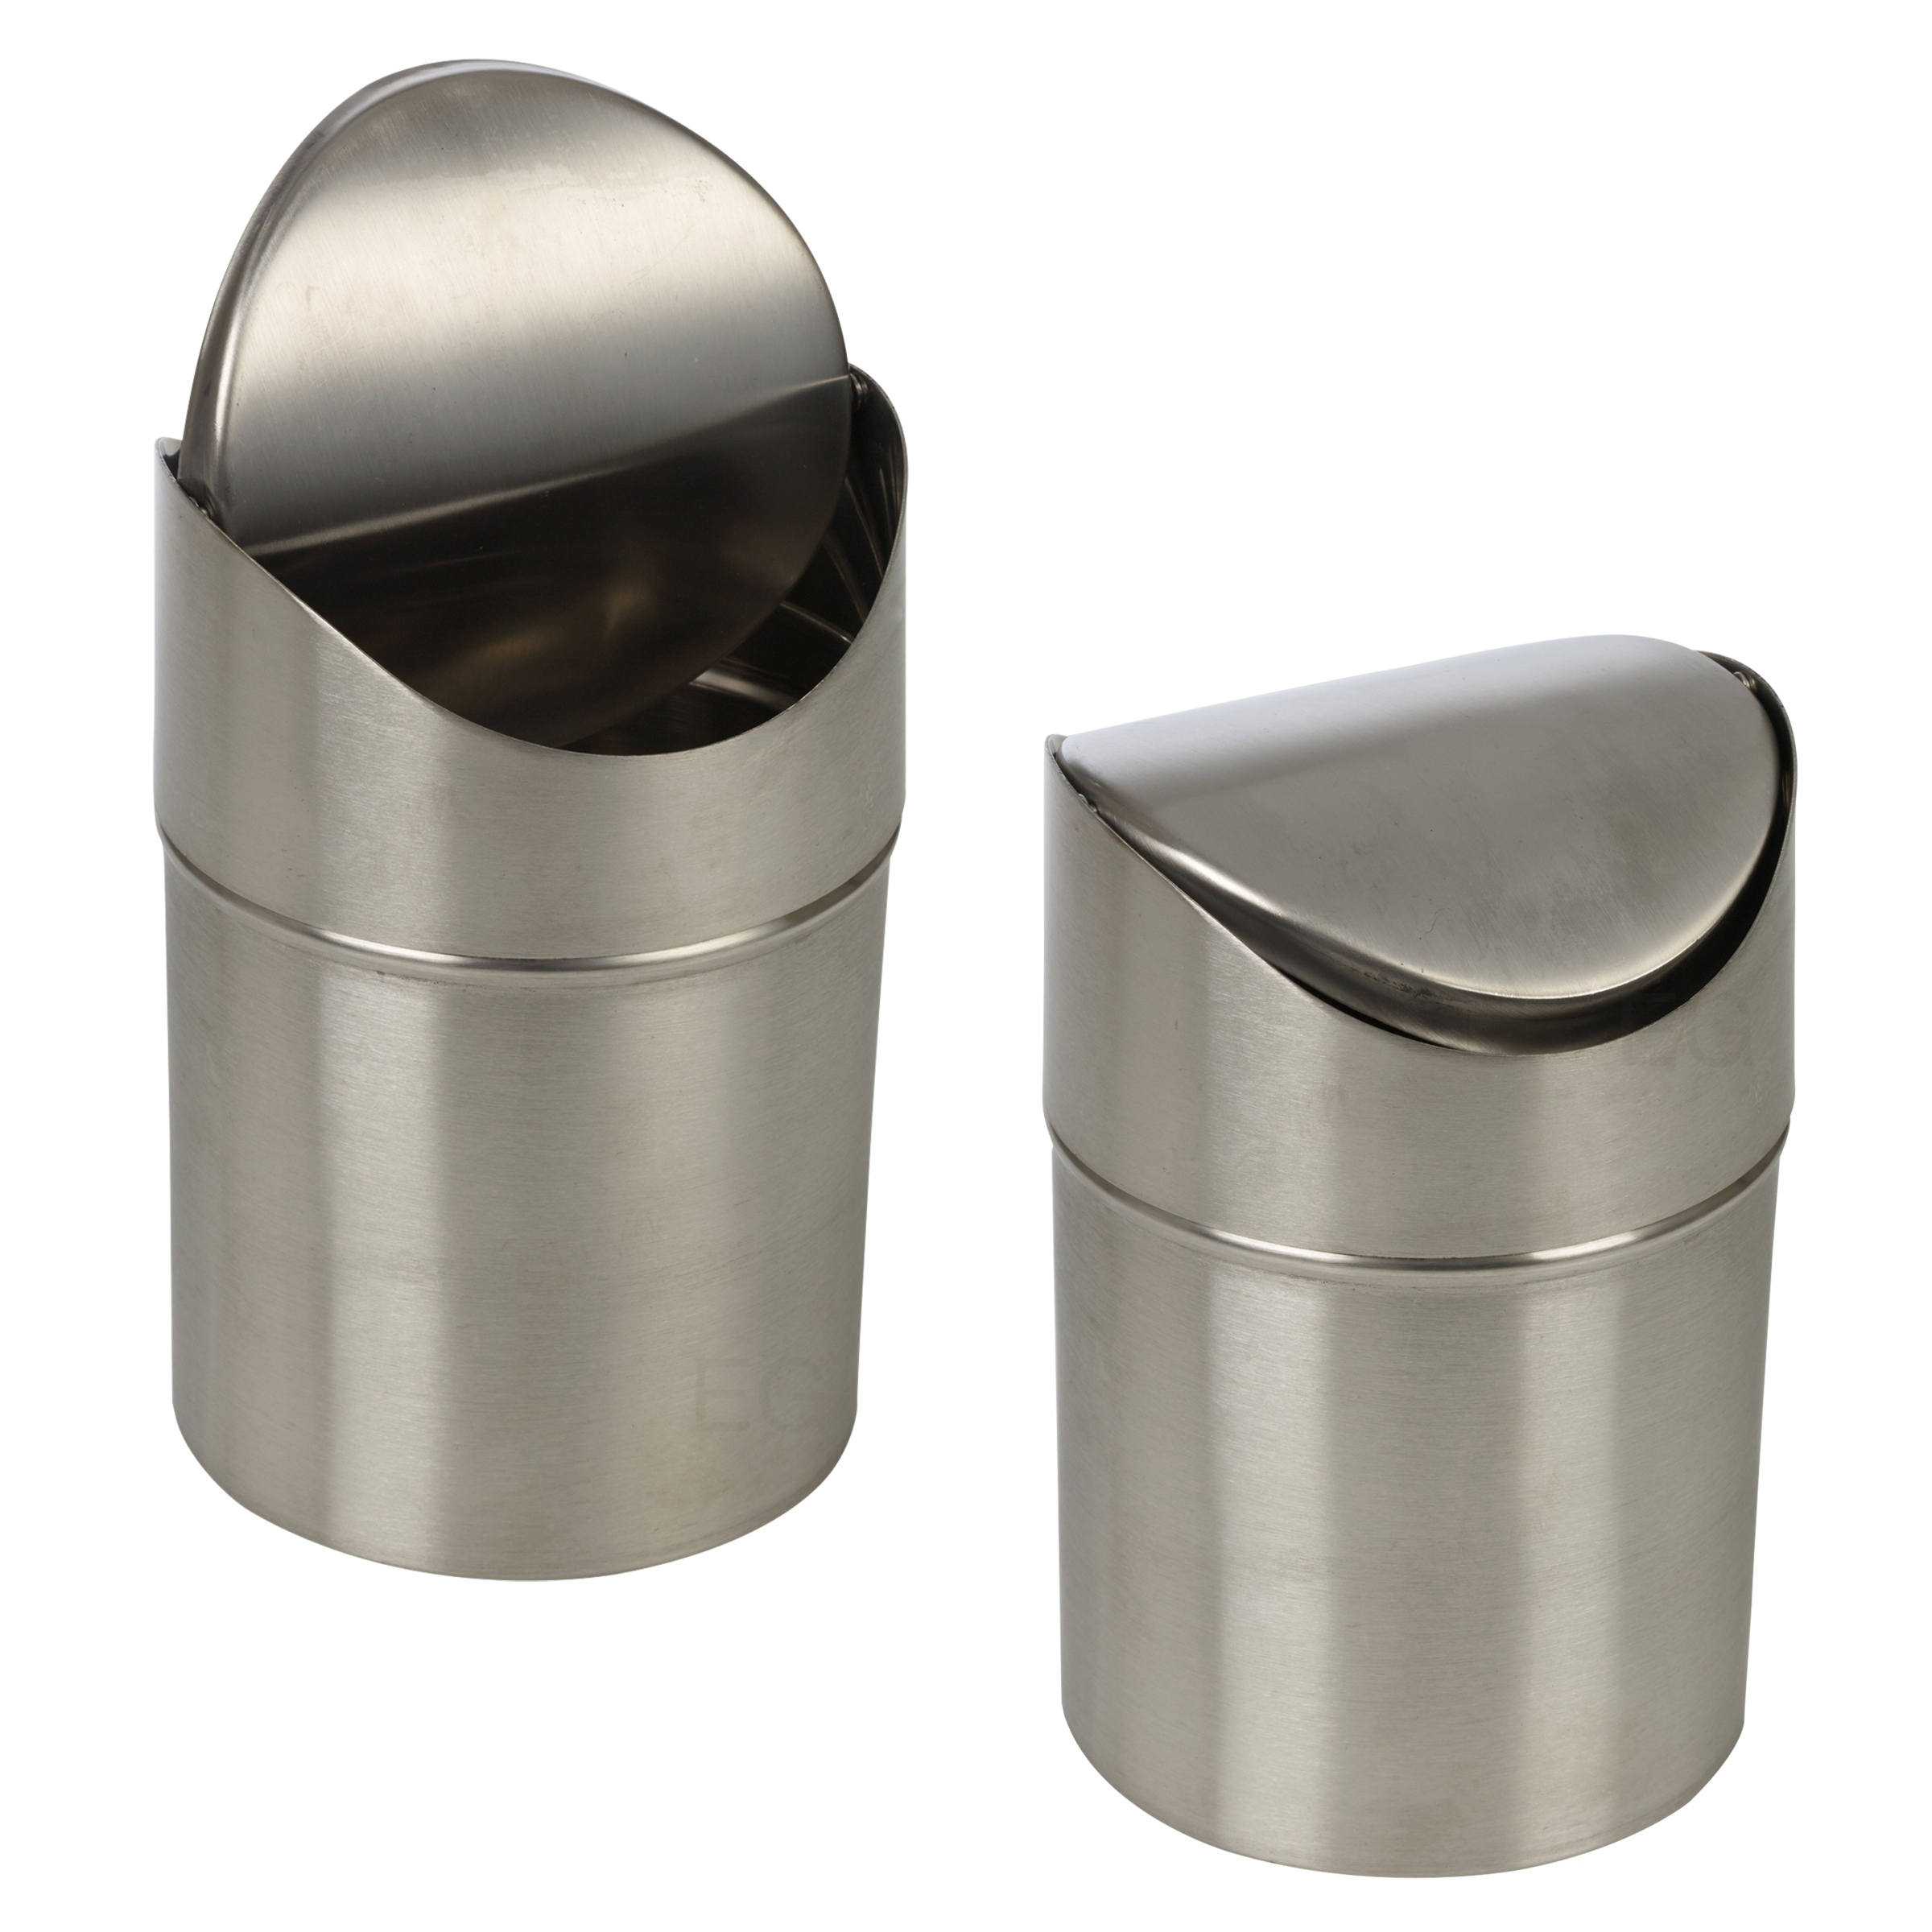 Small Metal Trash Cans With Lids Stainless Steel 1 5l Small Recycling Bin Swing Lid Kitchen